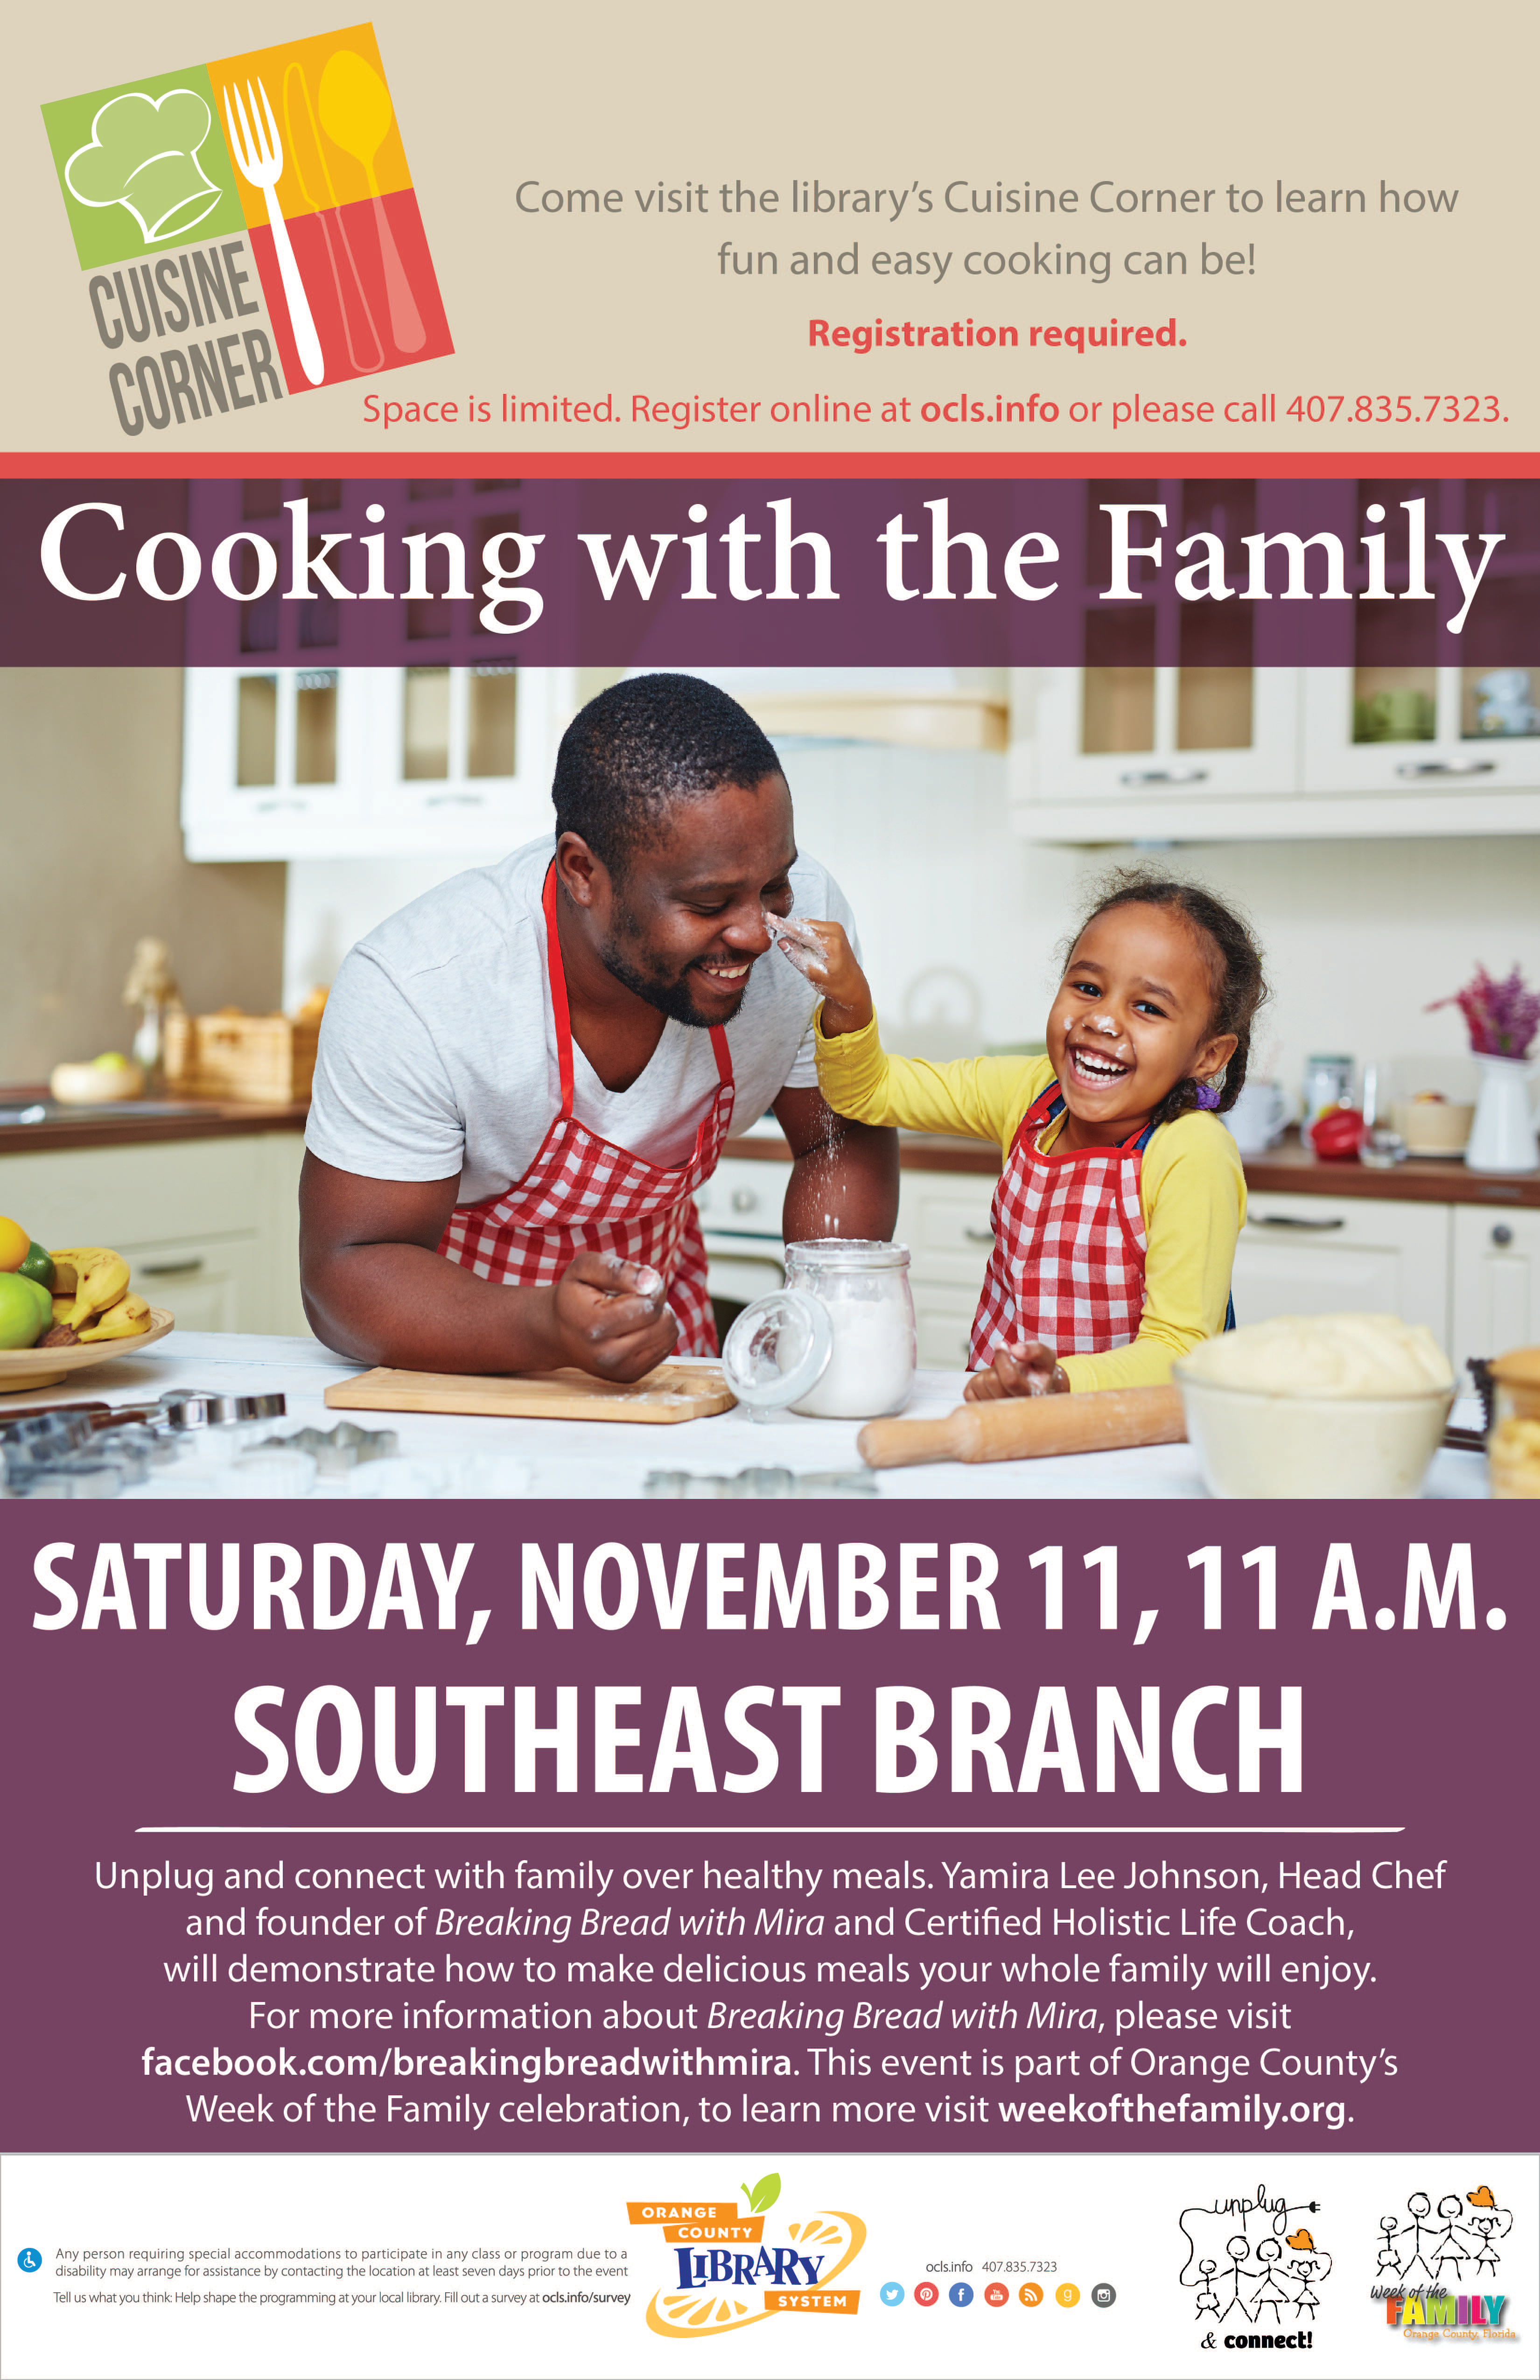 Cooking with the Family 11-11-17 Southeast-01